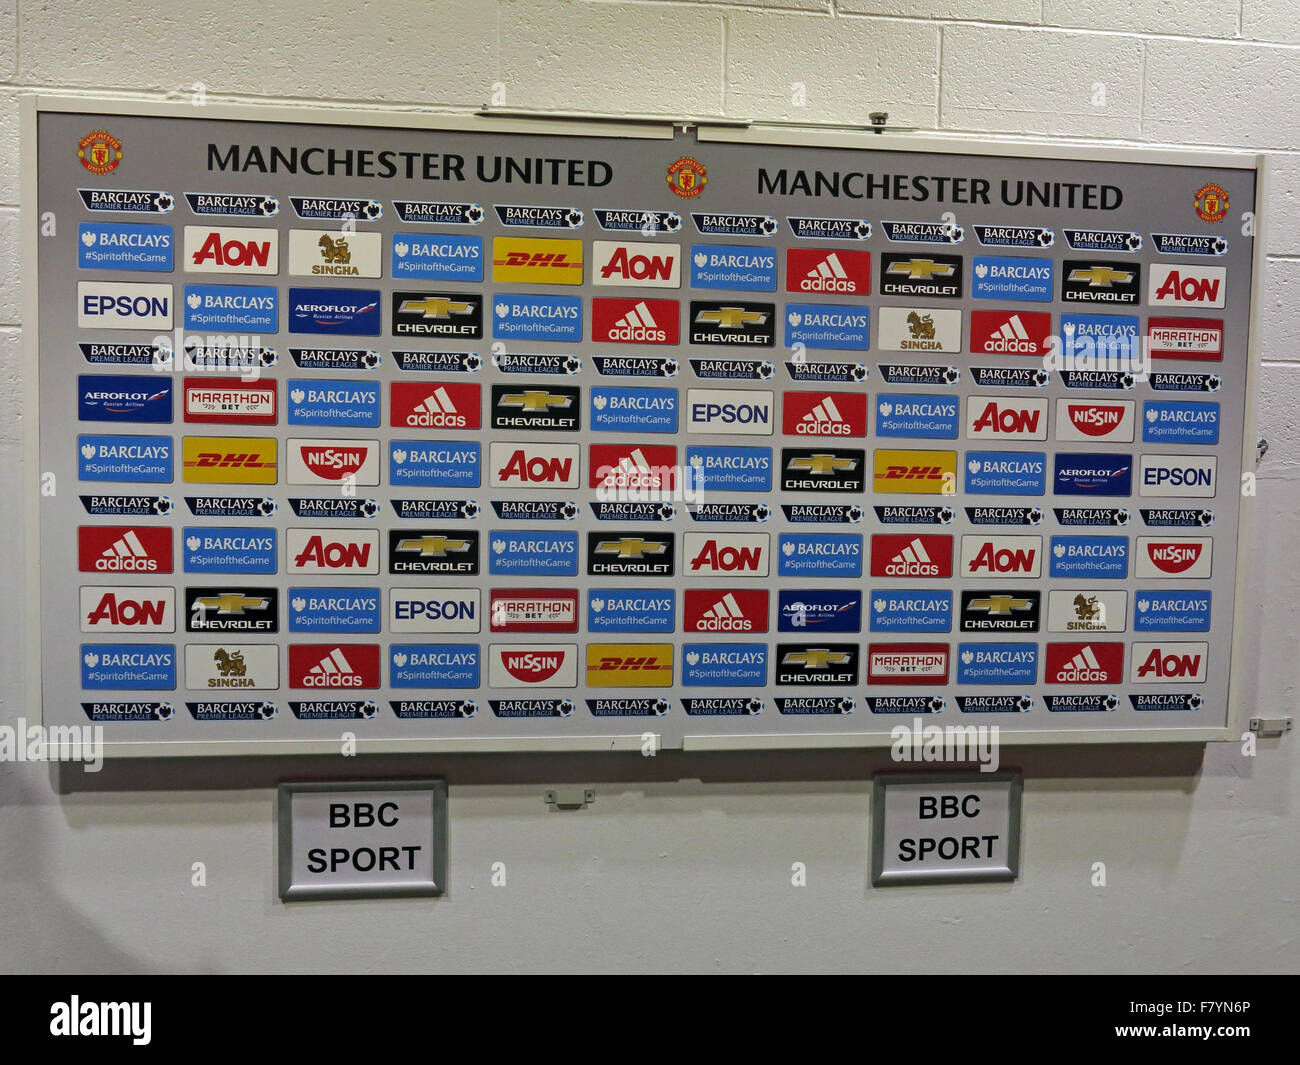 ManUtd,England,UK,AON,Barclays,Epson,Adidas,MOTD,match,of,the,day,BBC Sport,Manchester United,interview board,Old Trafford,Match Of The day,GoTonySmith,ManchesterUnited,MUFC,Mancester,MU,old,Trafford,theatre,of,dreams,Lancs,Lancashire,RedDevils,Red,Devils,Football,Club,FC,allseater,all-seater,association,away,balls,betting,britain,british,champions,changing,coaches,competition,culture,cups,division,documentary,dressing,england,english,fans,fixtures,game,goals,ground,heritage,history,home,homesoffootball,hooliganism,justice,kick,kick-off,league,managers,midweek,pitch,players,police,premier,promotion,referees,regulations,relegation,results,room,roots,rules,saturday,saturdays,scorers,season,seated,seater,seating,shinpads,shirt,shirts,sizes,sky,skysports,soccer,social,socks,sponsors,sport,stadia,stadium,standing,sundays,sunday,system,tables,team,terraces,tradition,trainers,Adidas,Puma,Buy Pictures of,Buy Images Of,Old Trafford,Theatre of Dreams,Theater of dreams,Red Devils